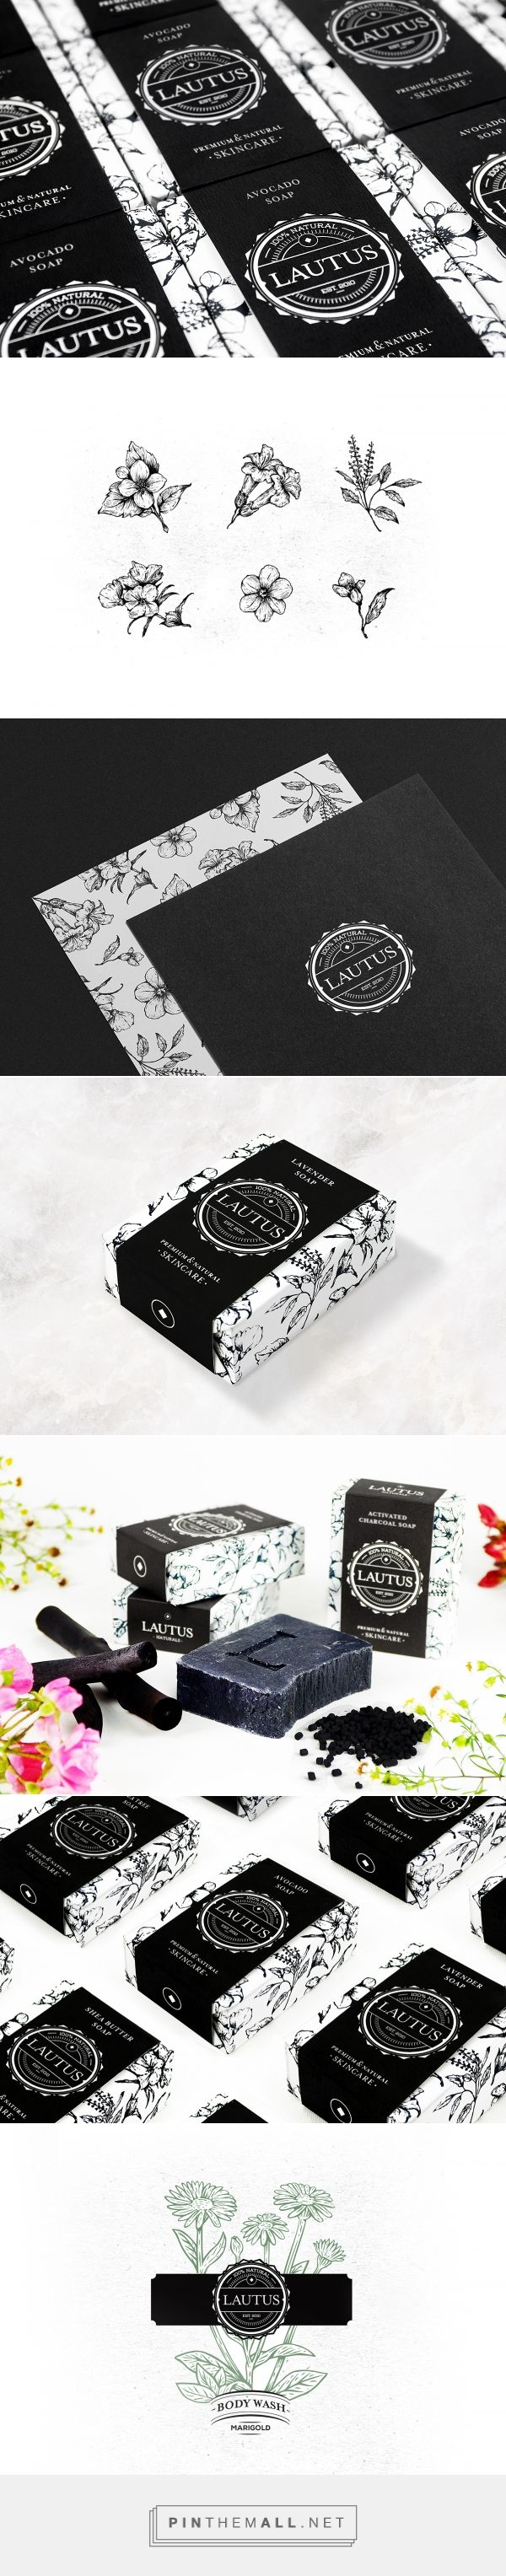 Lautus Soap Packaging by Sebi | Fivestar Branding Agency – Design and Branding Agency & Curated Inspiration Gallery